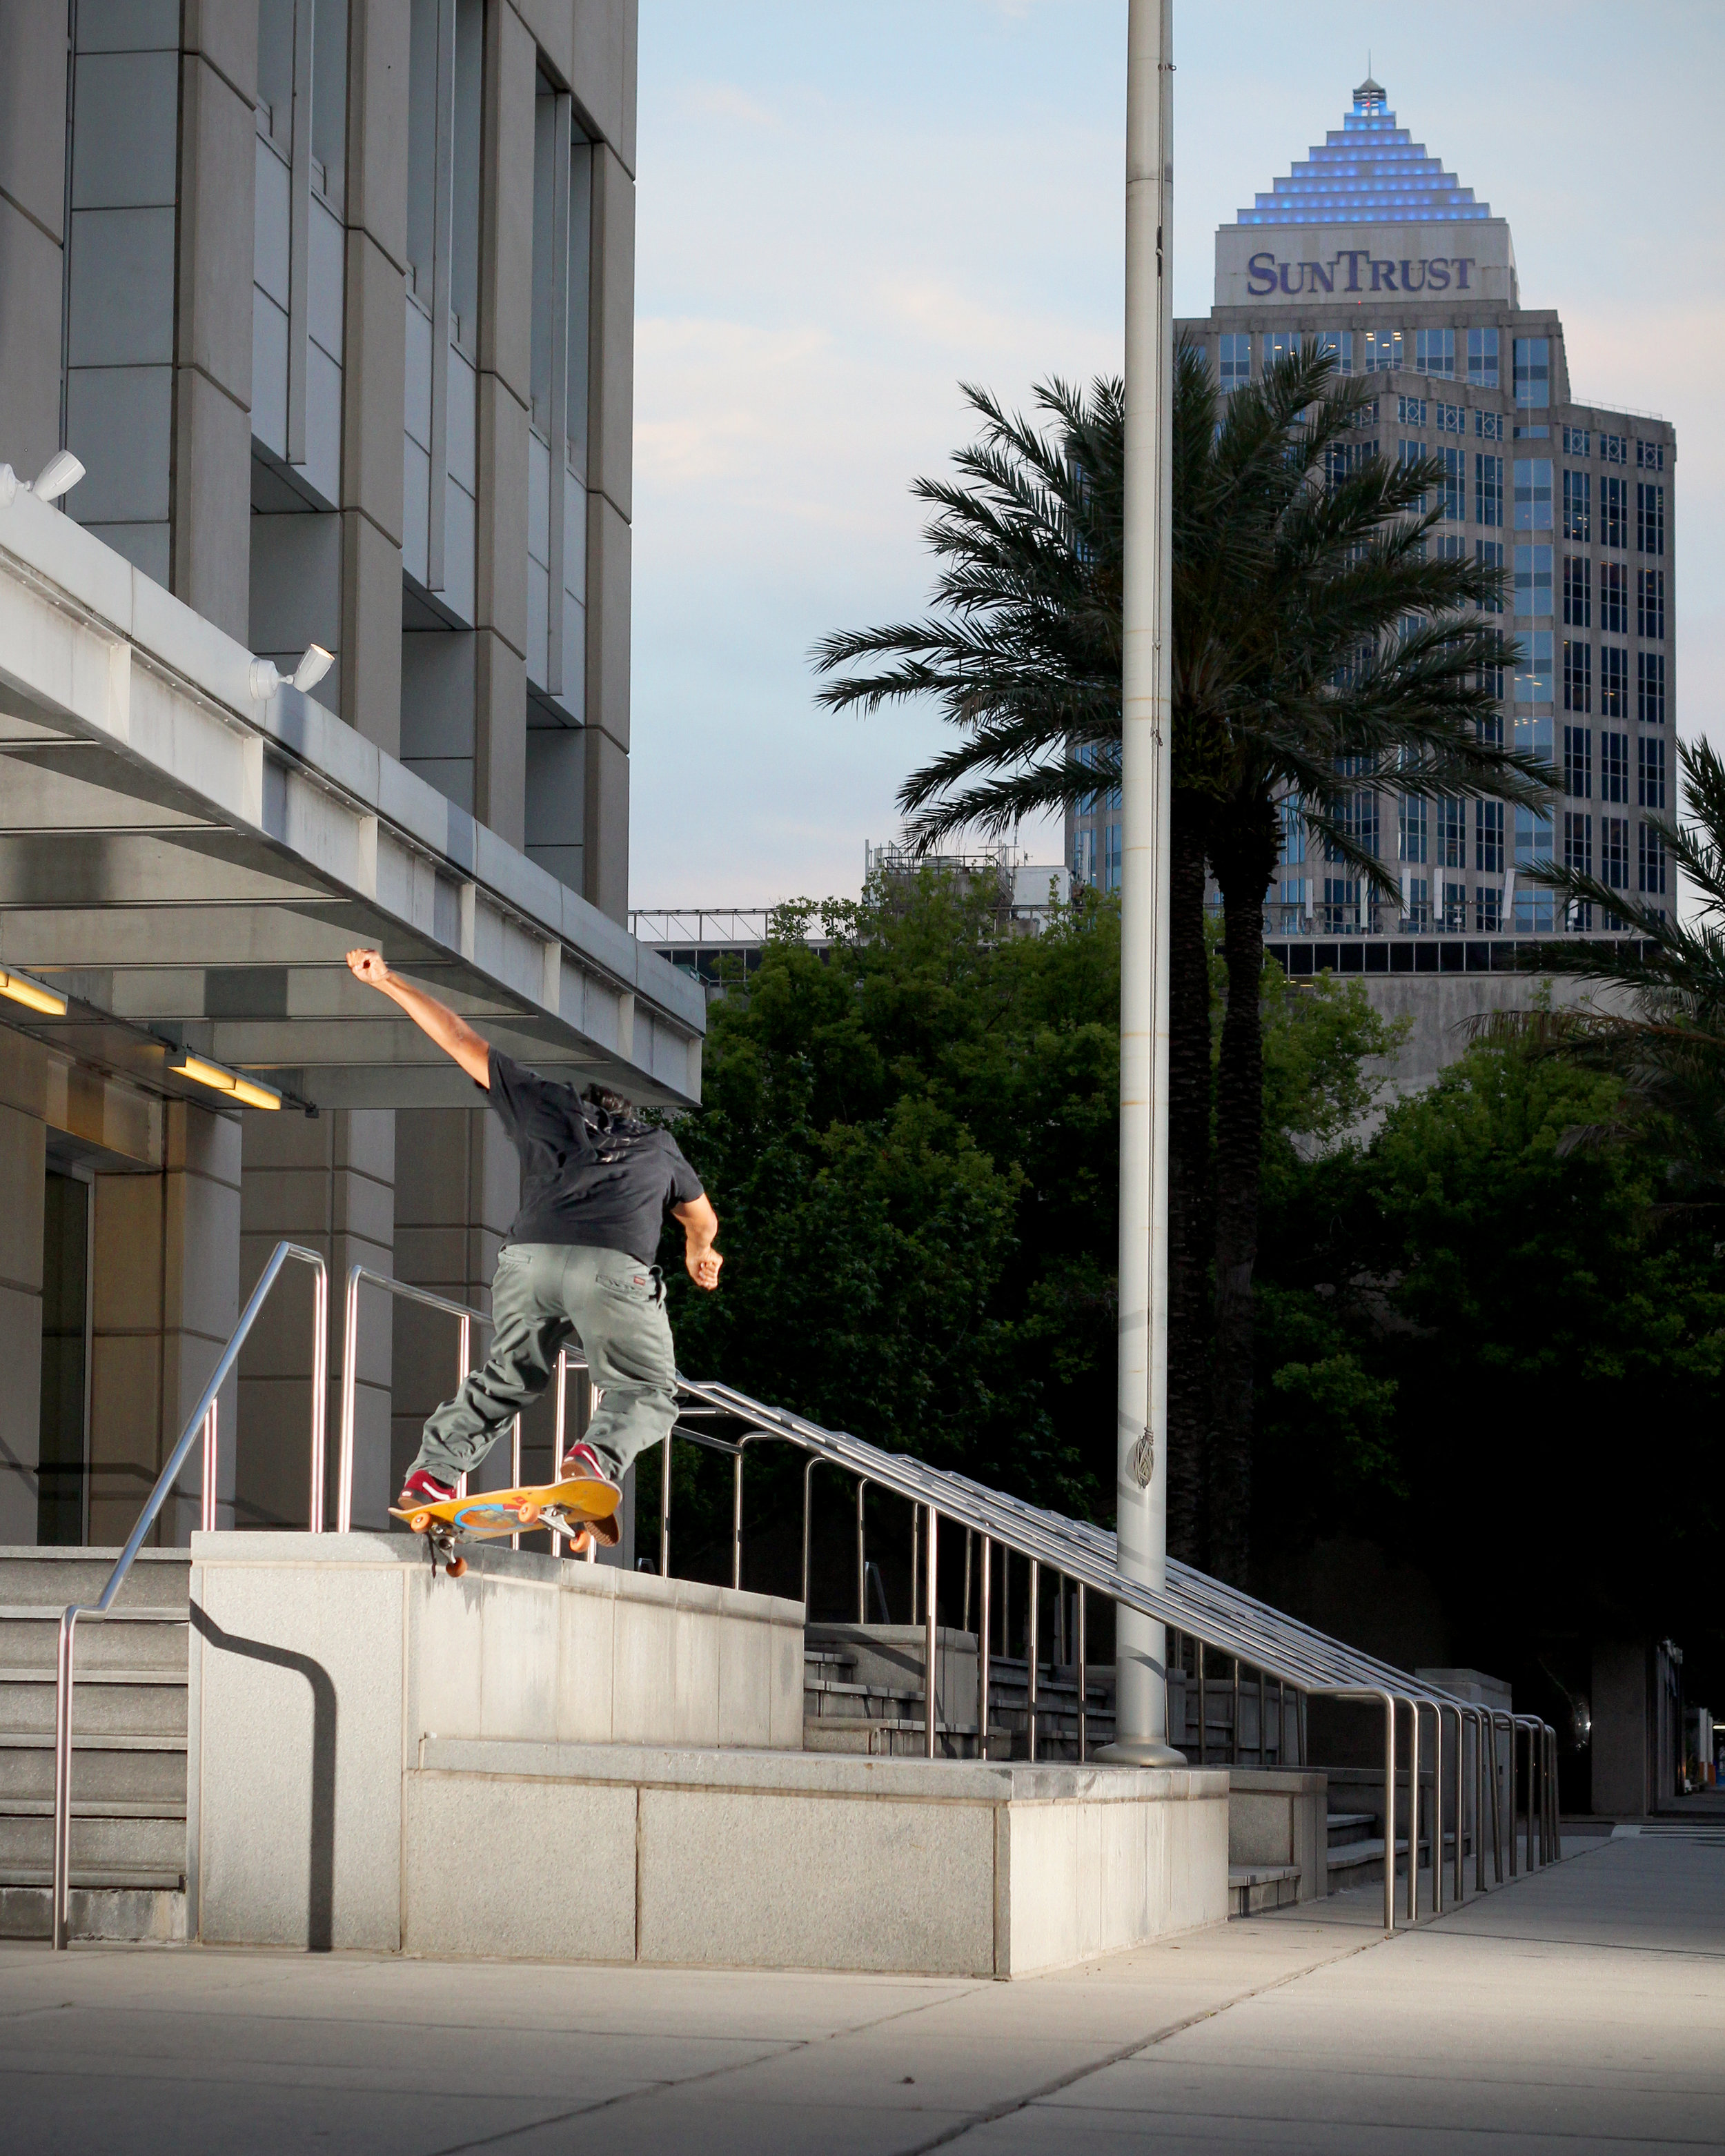 Sam Bellipanni-ollie up bs 180 nosegrind the Federal Courthouse in Tampa / Photo: Bowser